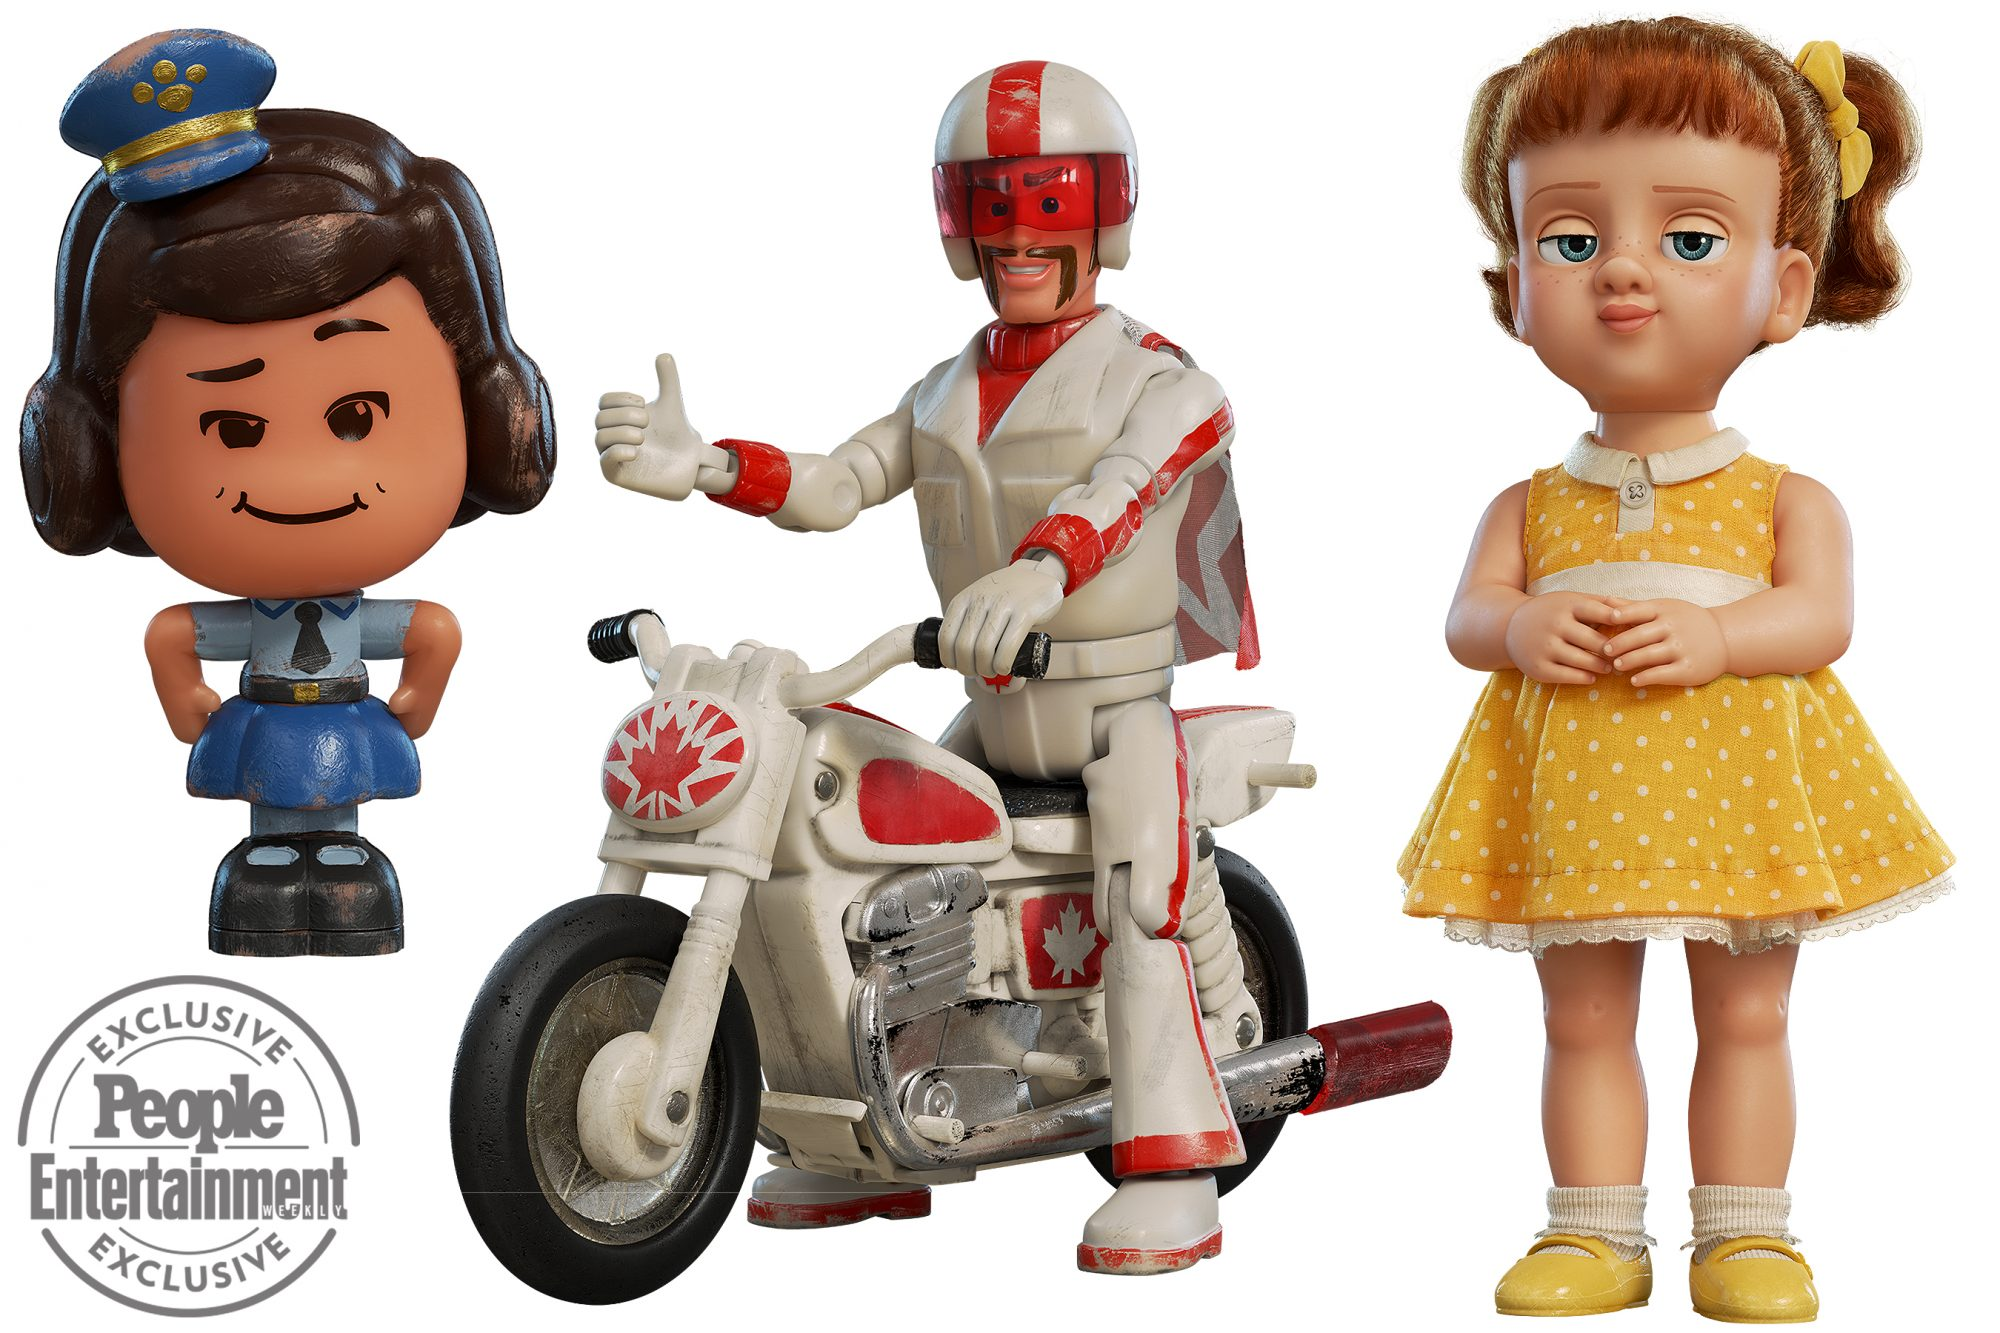 toy-story-4-exclu-touts